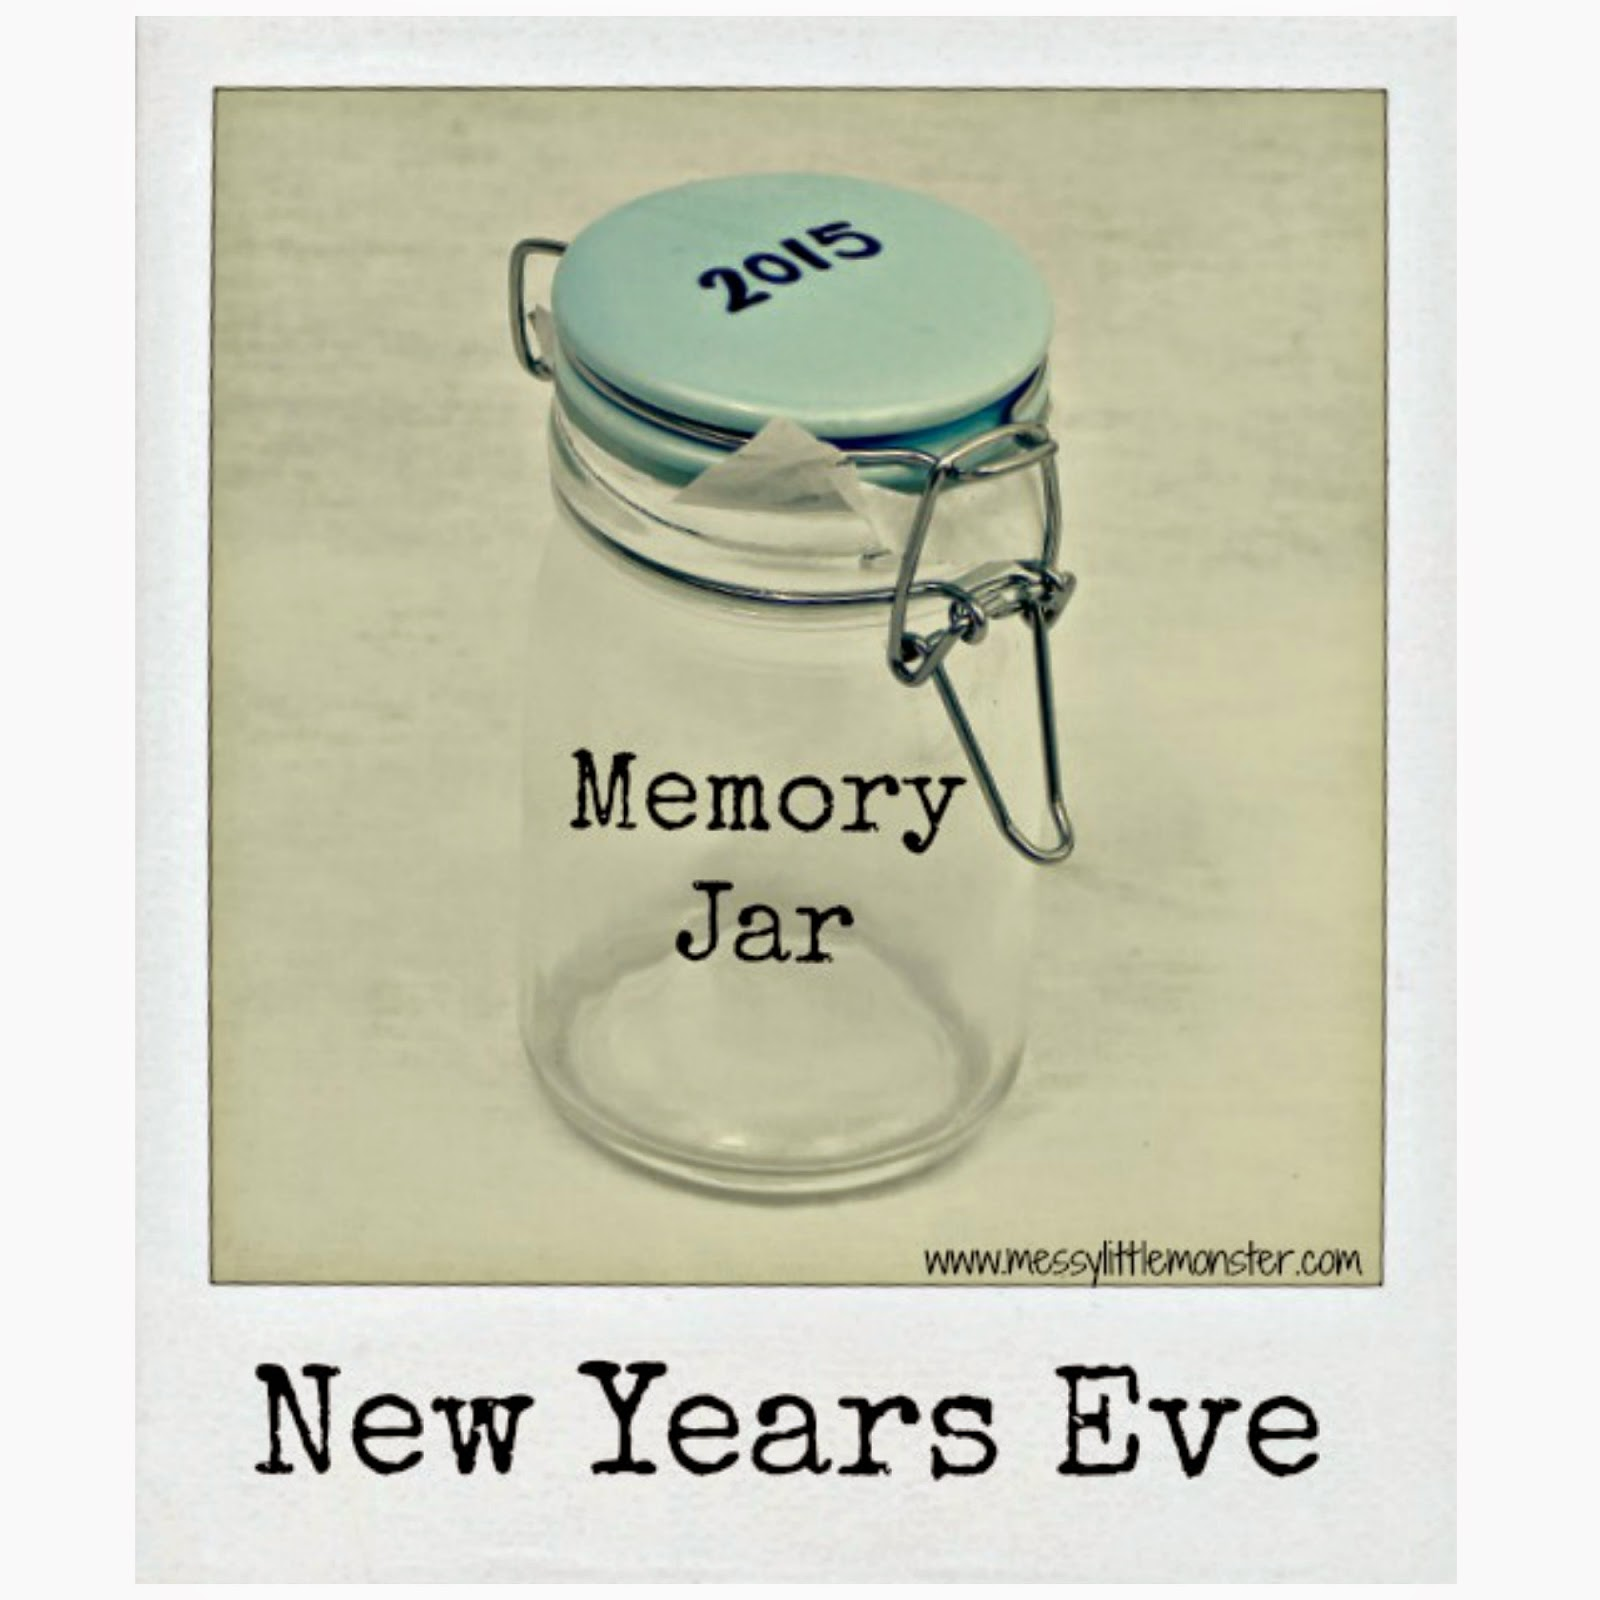 New Years Eve Memory Jar - Messy Little Monster